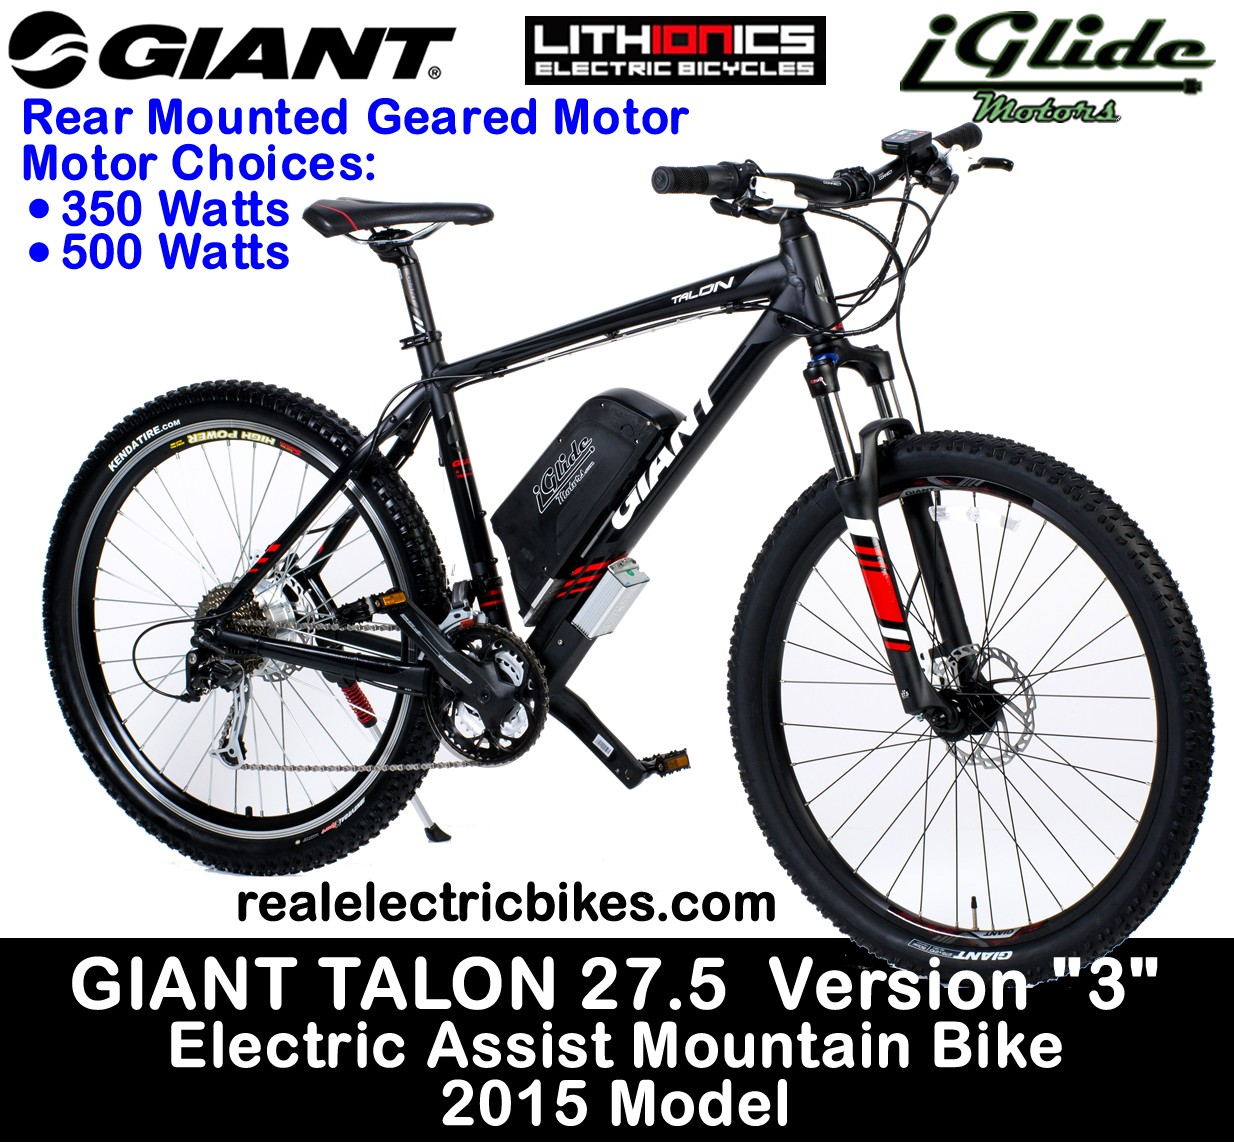 Giant Electric Bikes